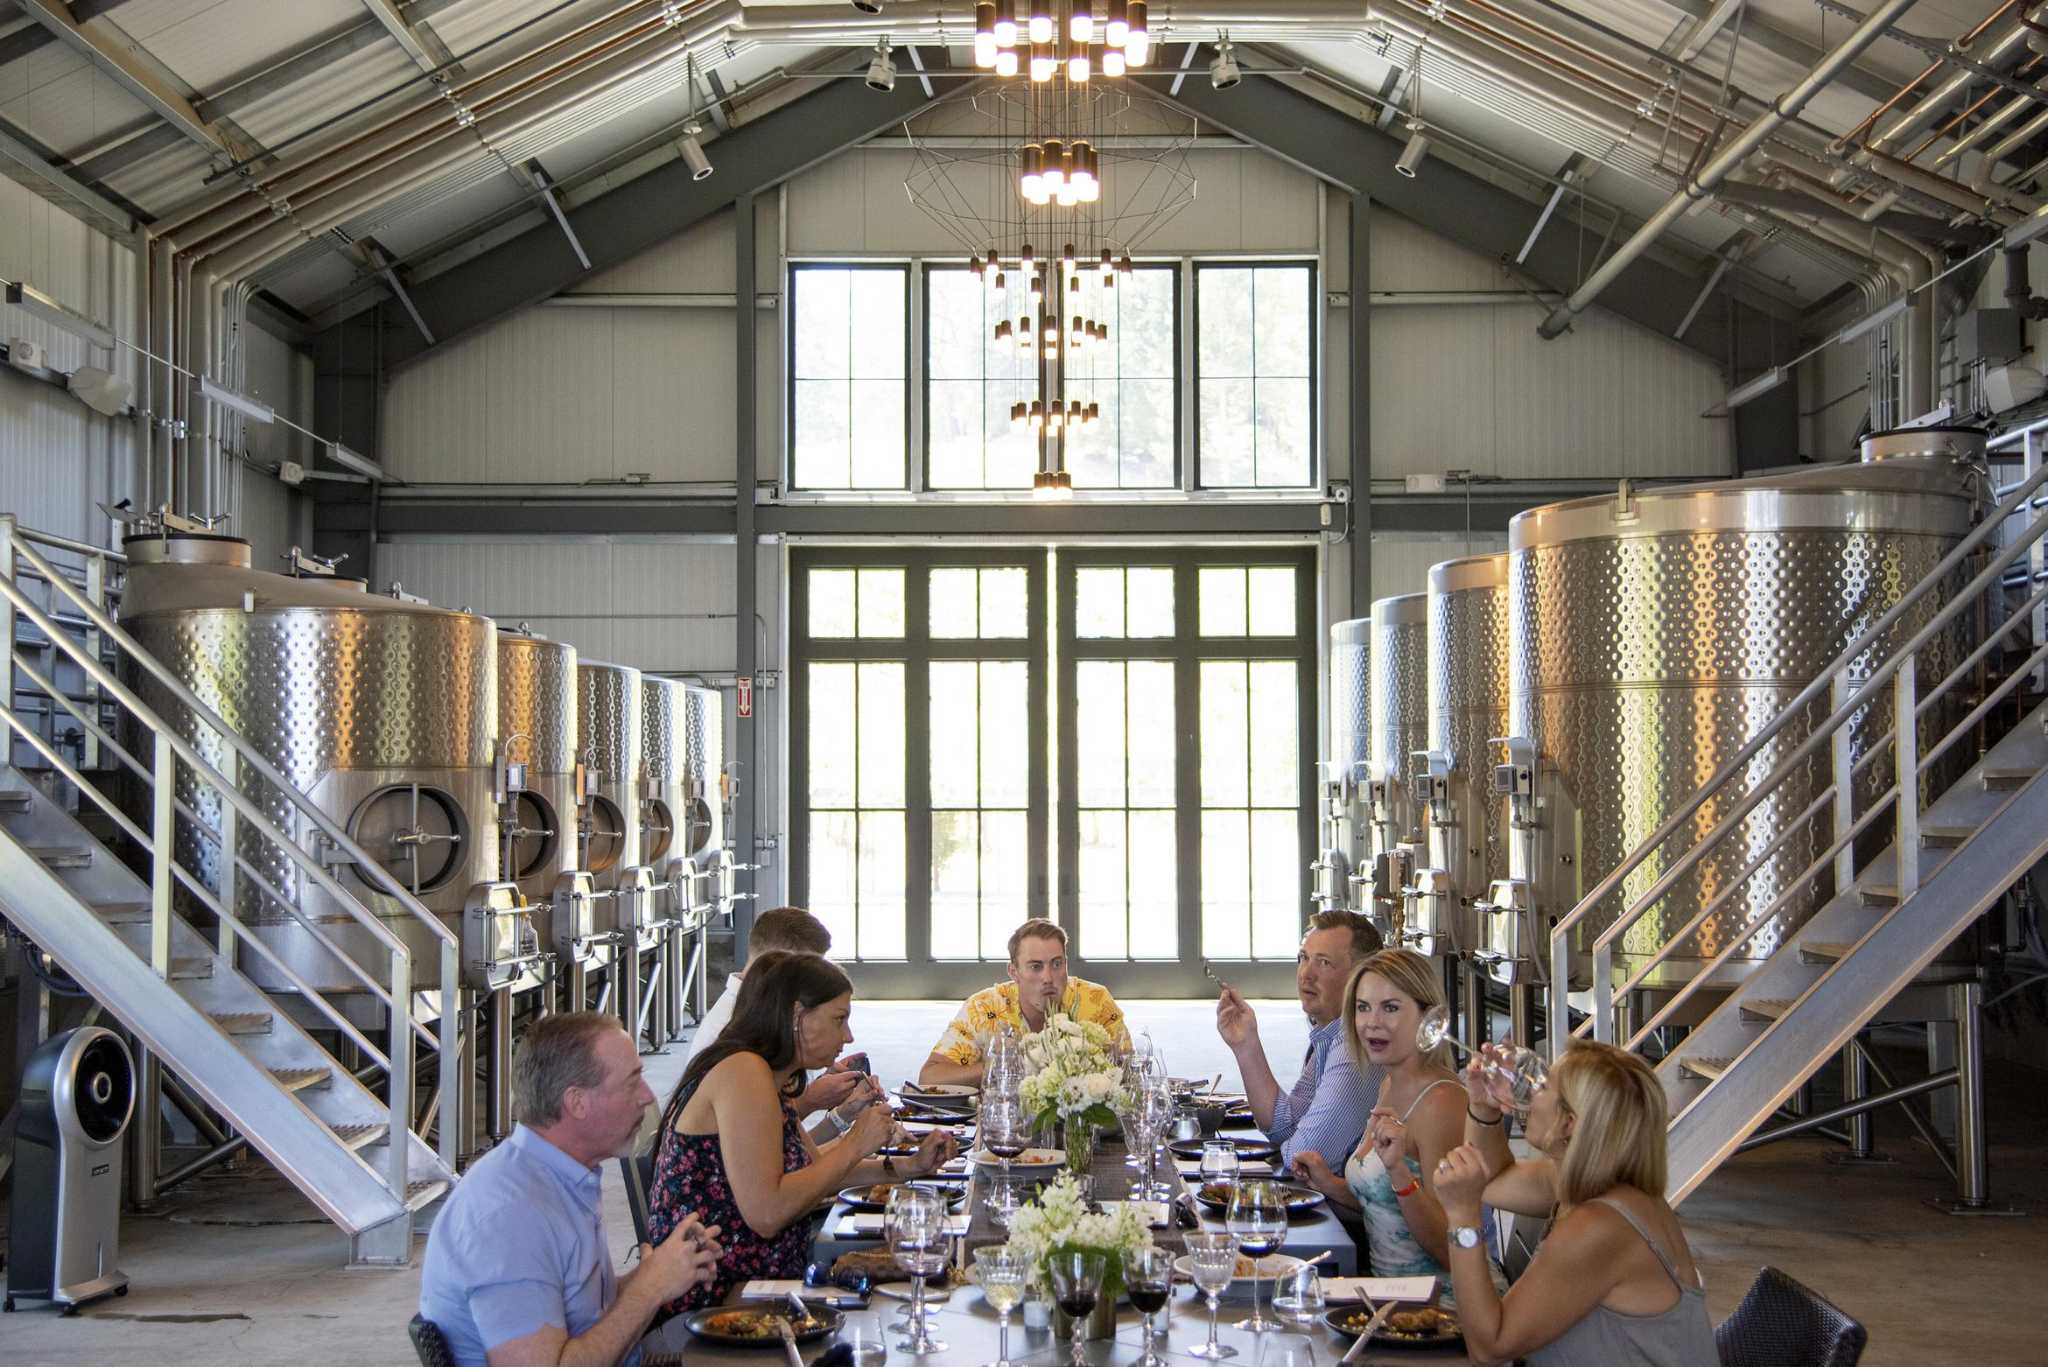 What tourism downturn? Napa wineries report off-the-charts demand for $500-plus tastings